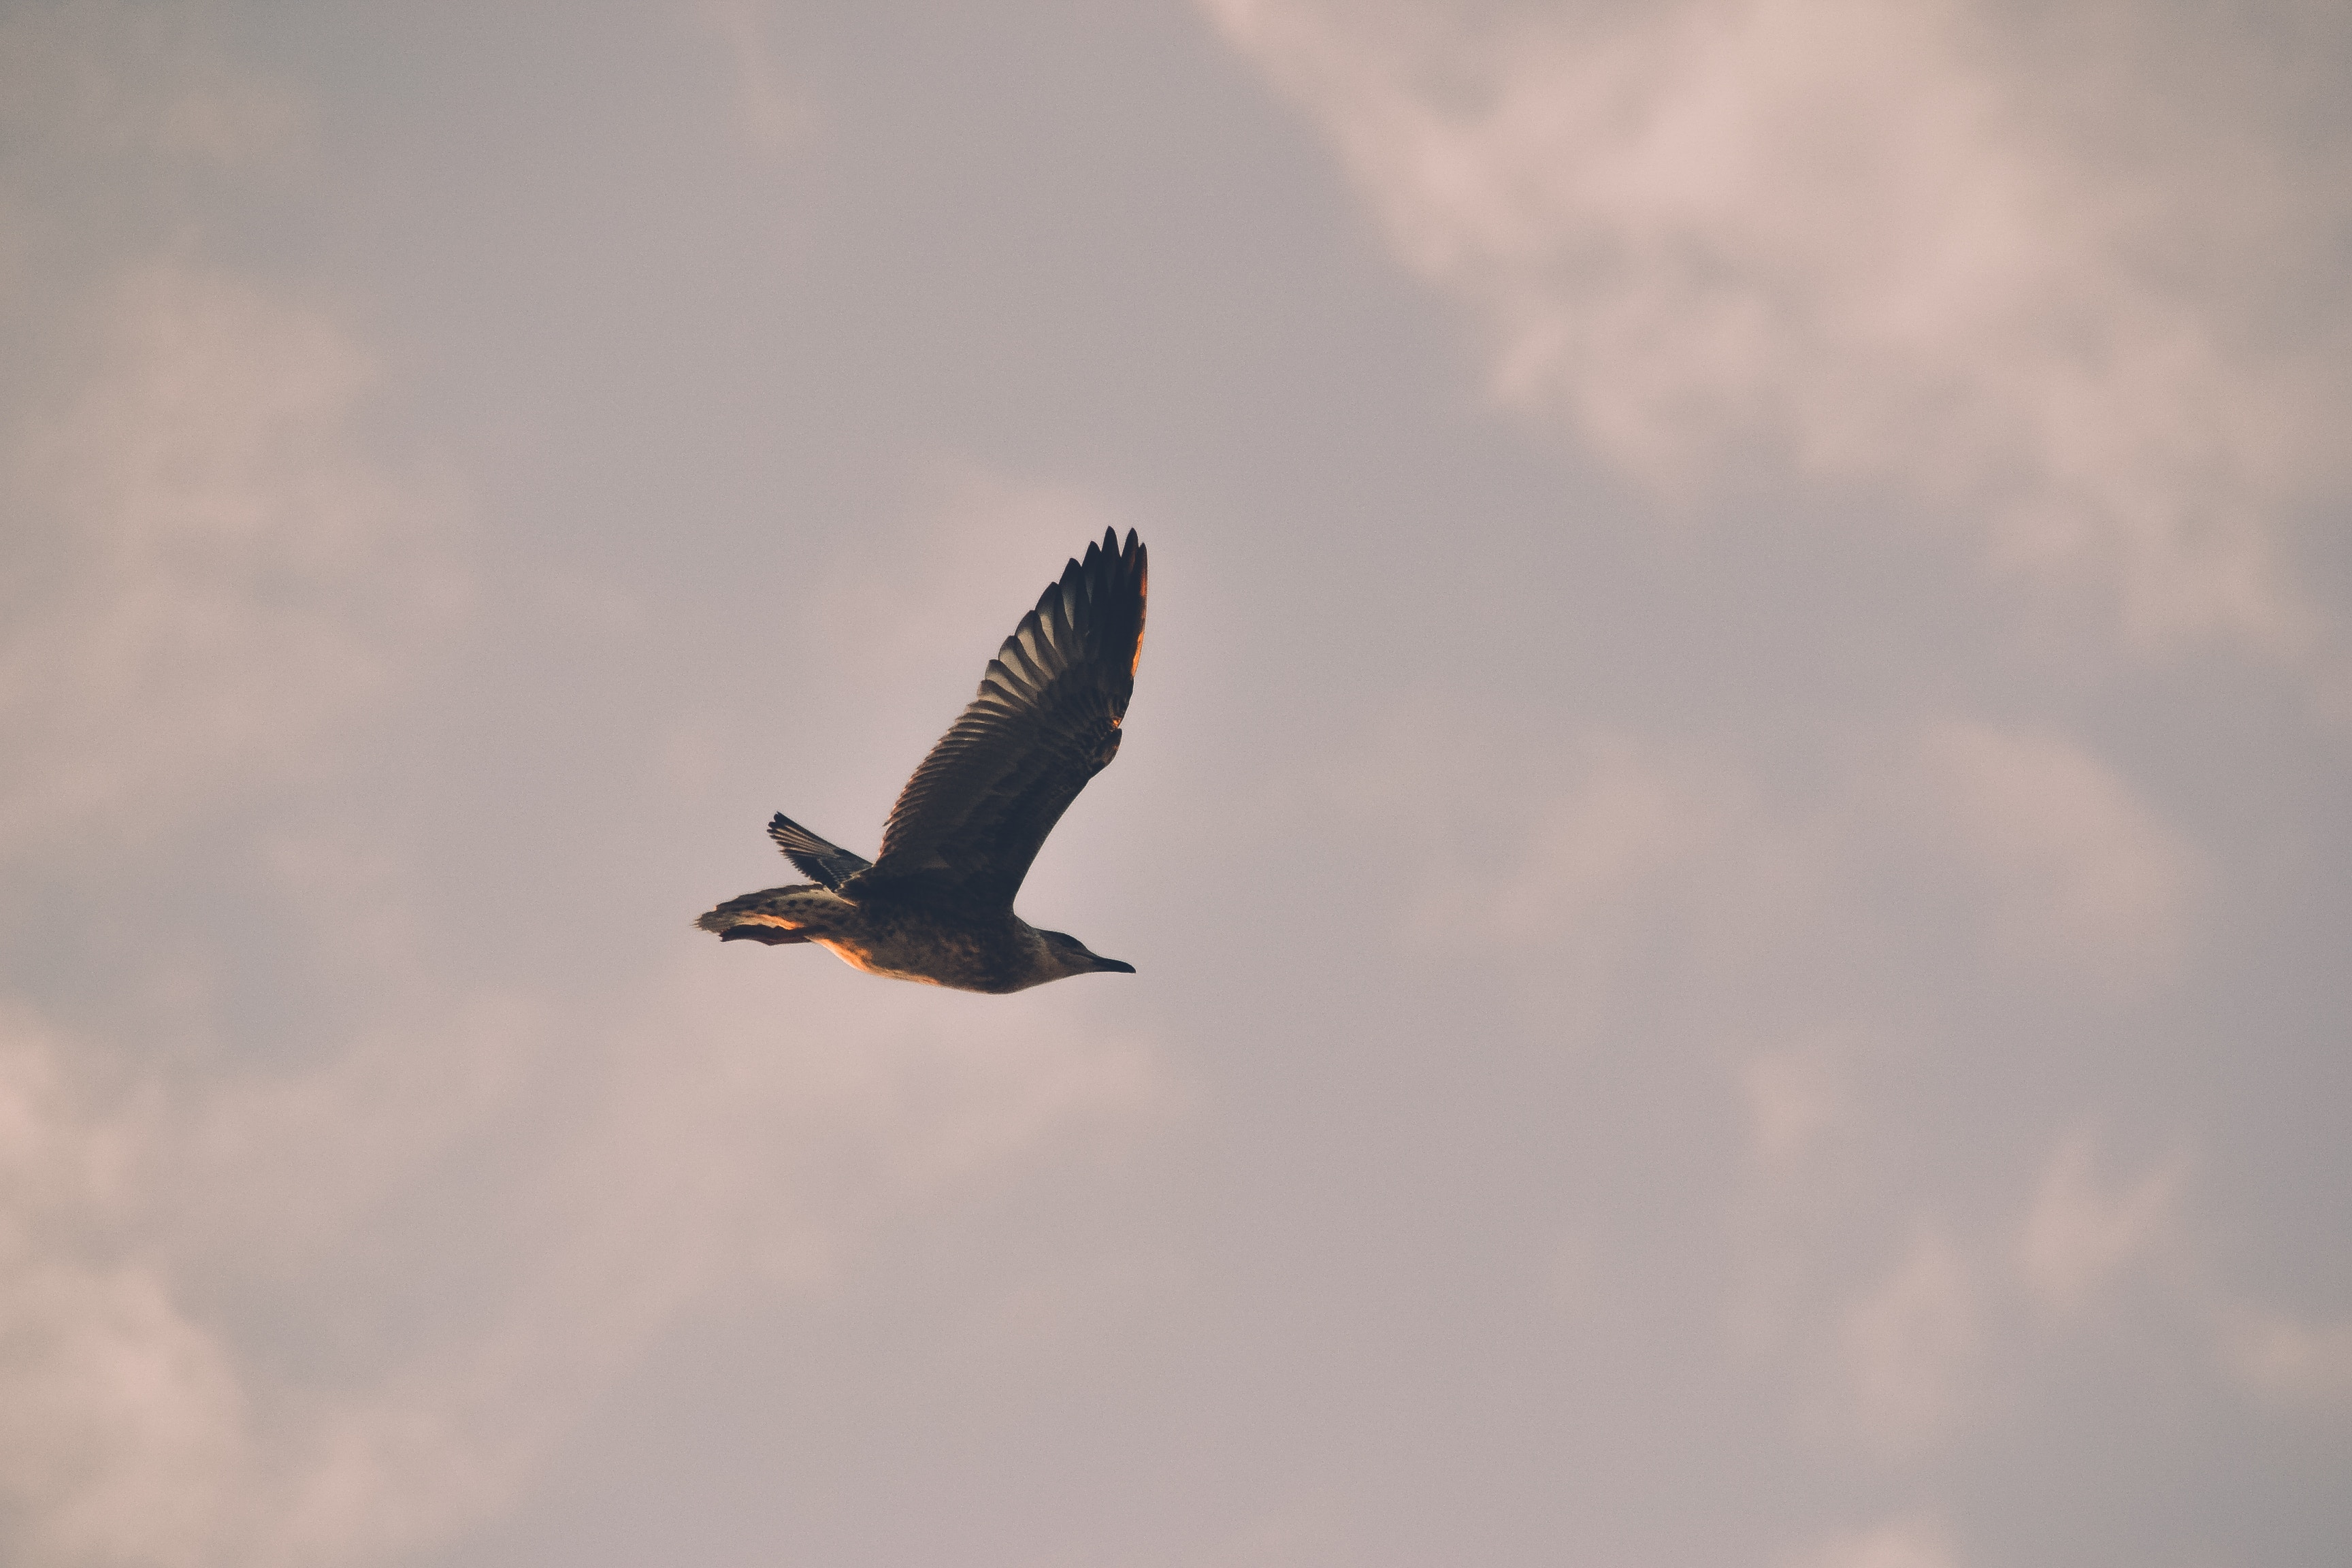 97356 download wallpaper Animals, Bird, Gull, Seagull, Flight, Sky screensavers and pictures for free